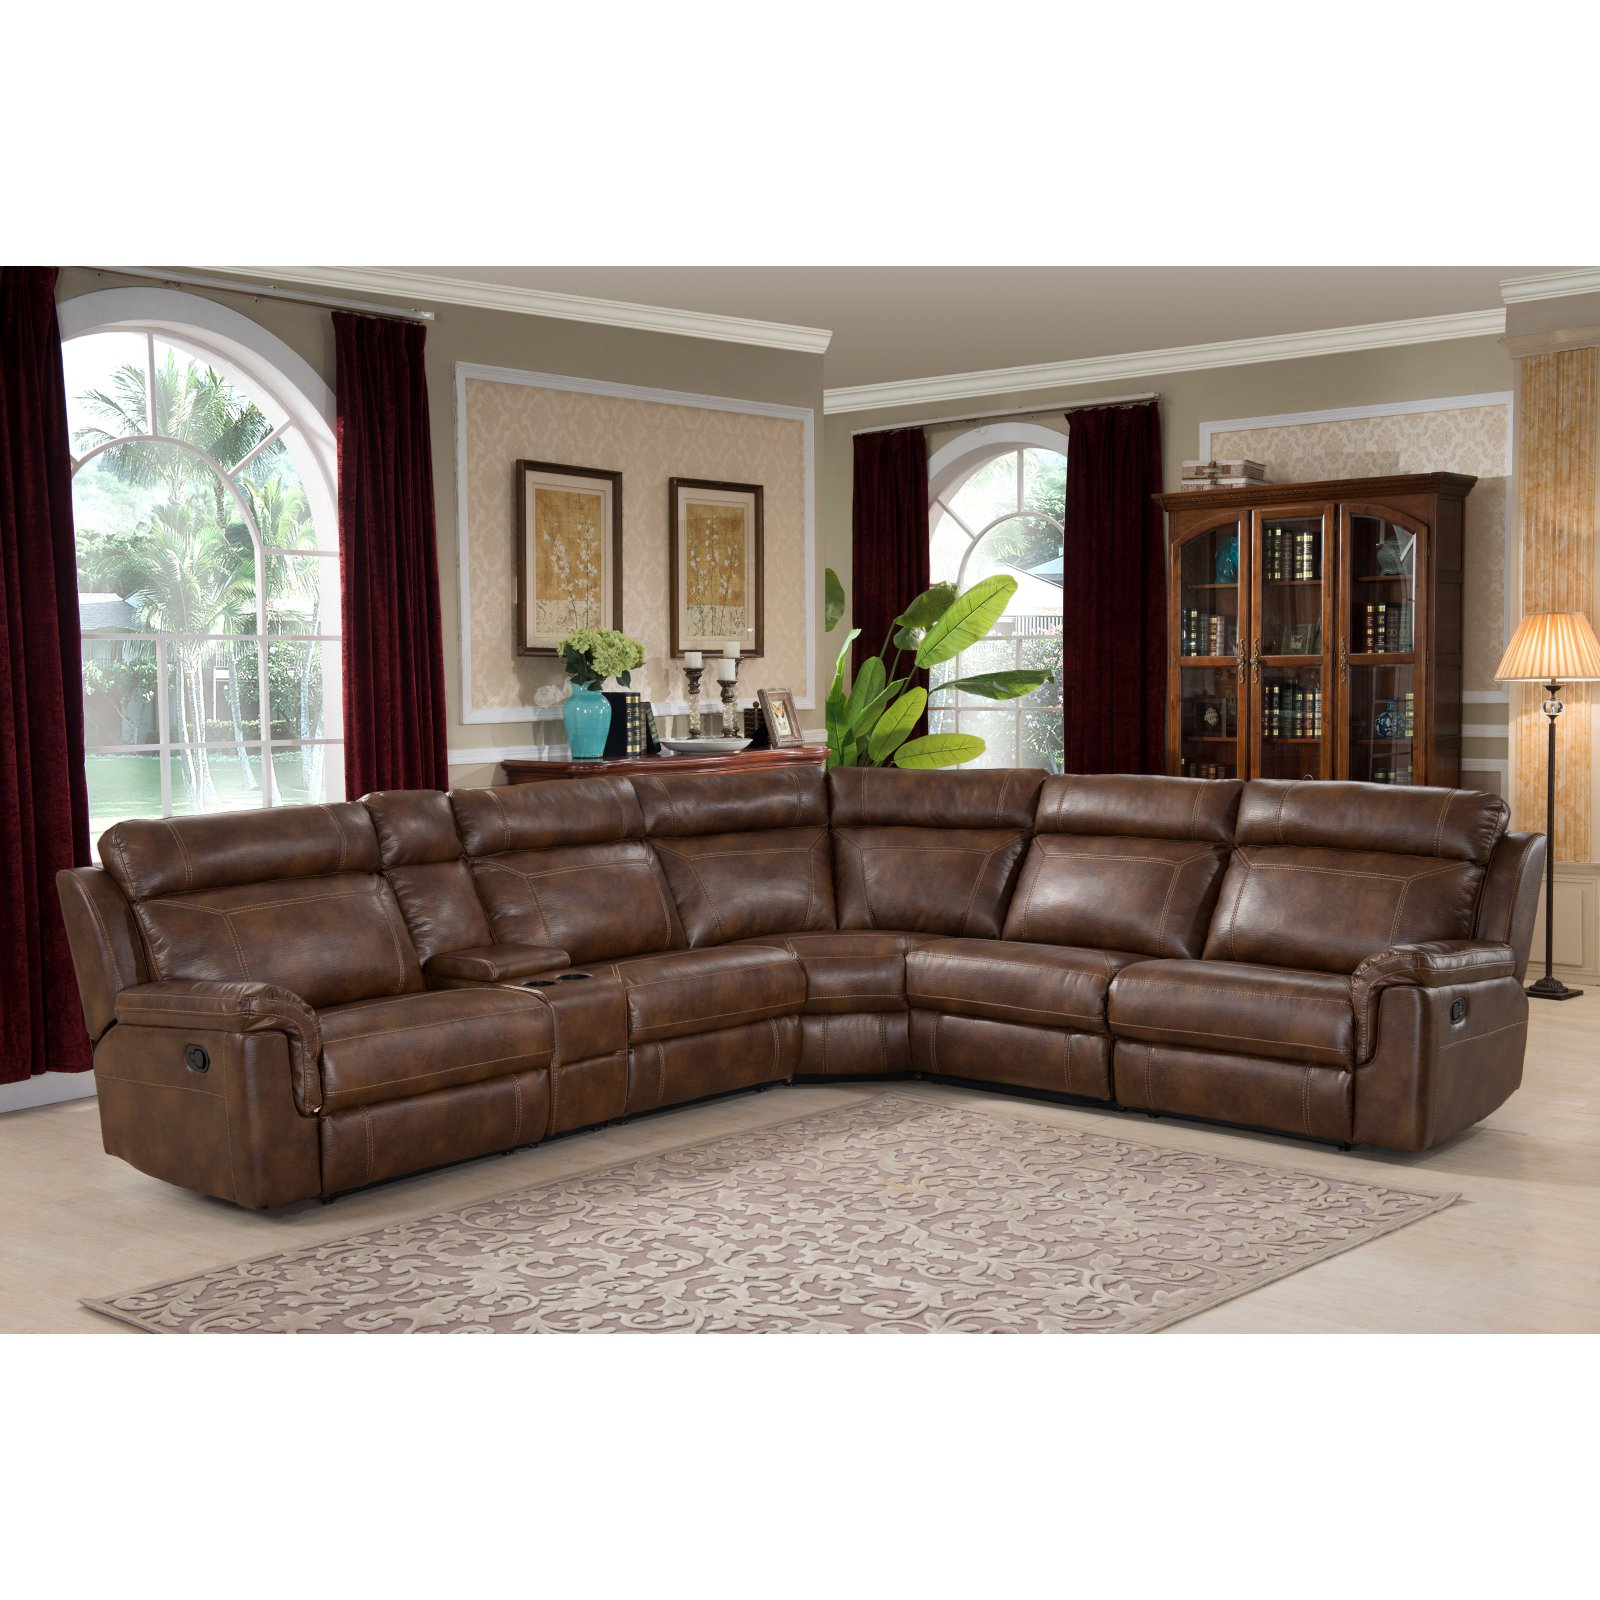 Product Image Christies Home Living Clark 6 Piece Reclining Living Room Sectional  Sofa